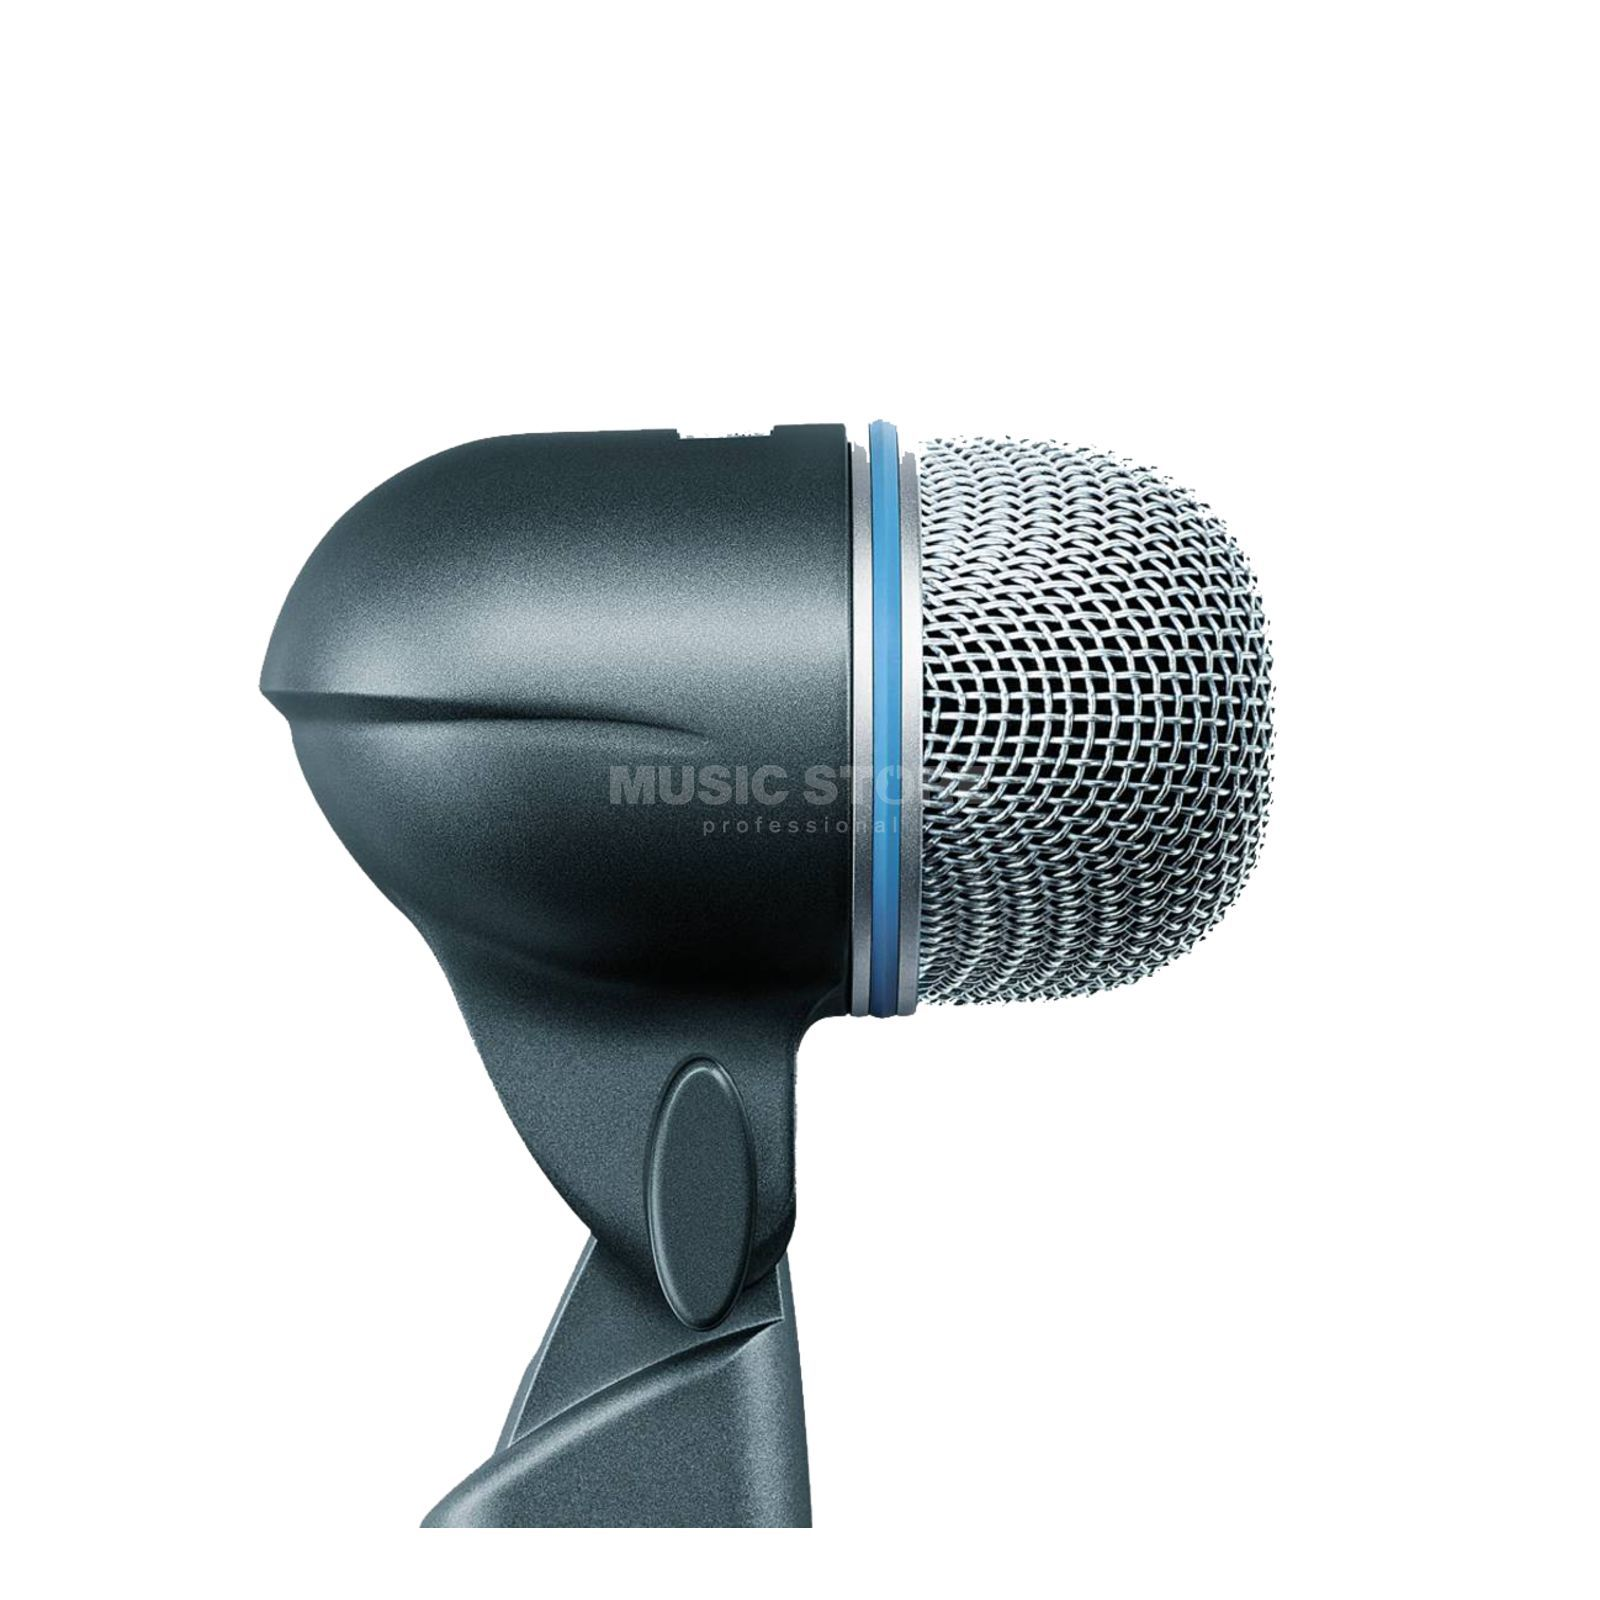 Shure Beta 52A dynamic Microphone Product Image